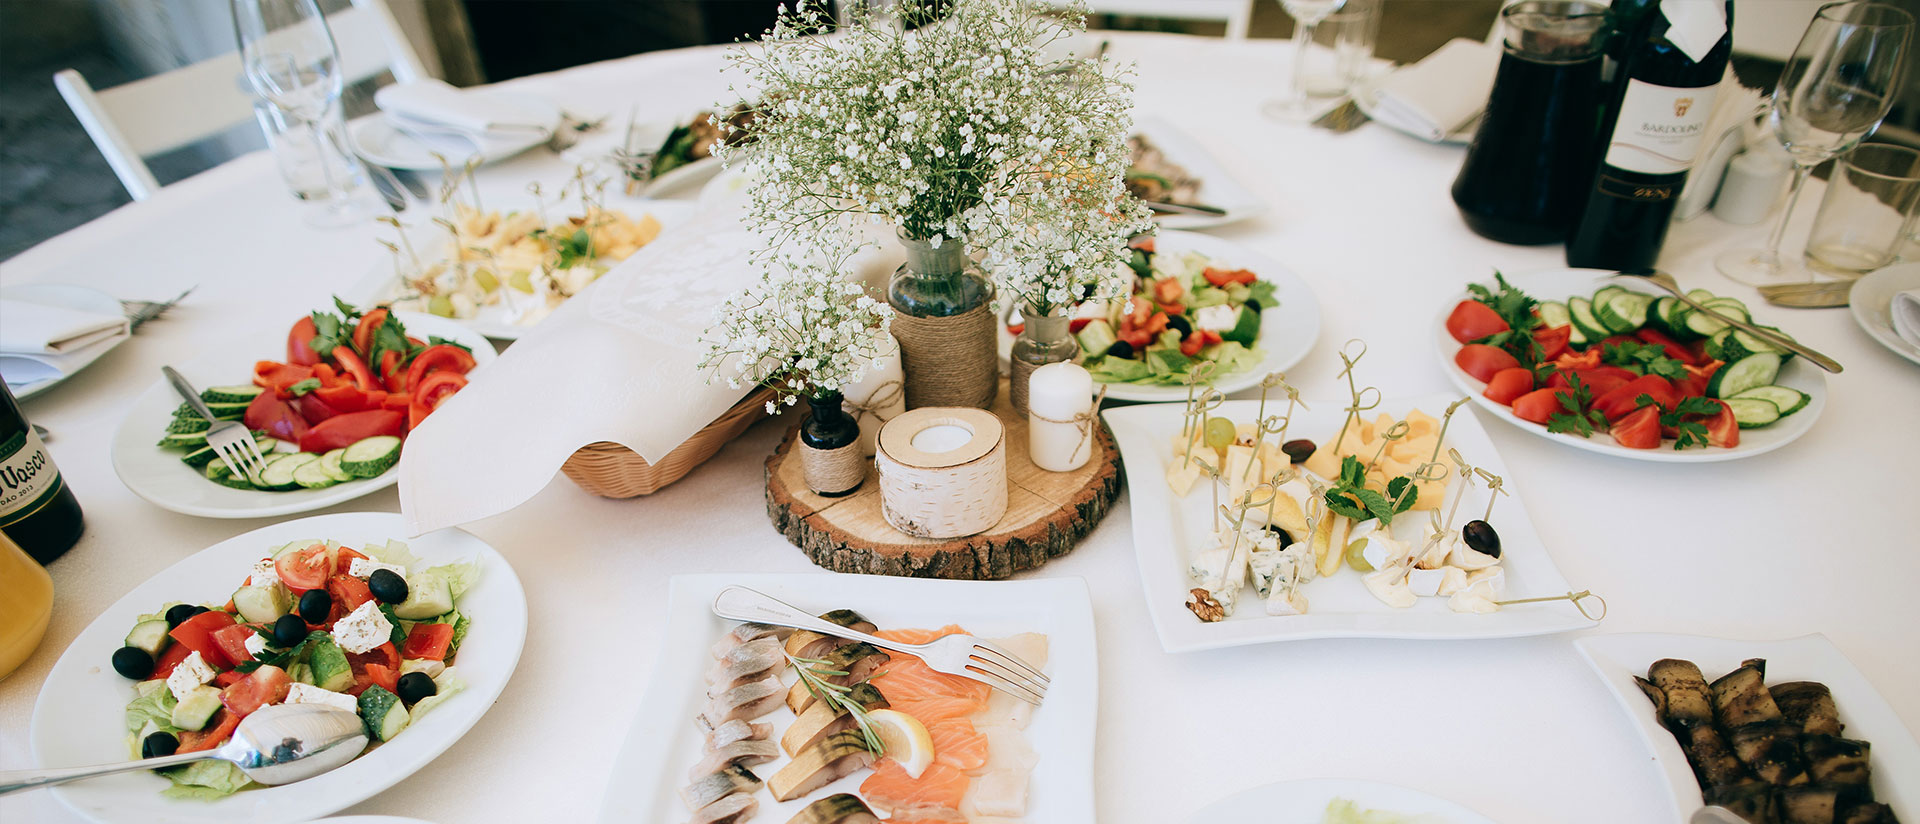 hosting-the-perfect-banquet-food-drinks